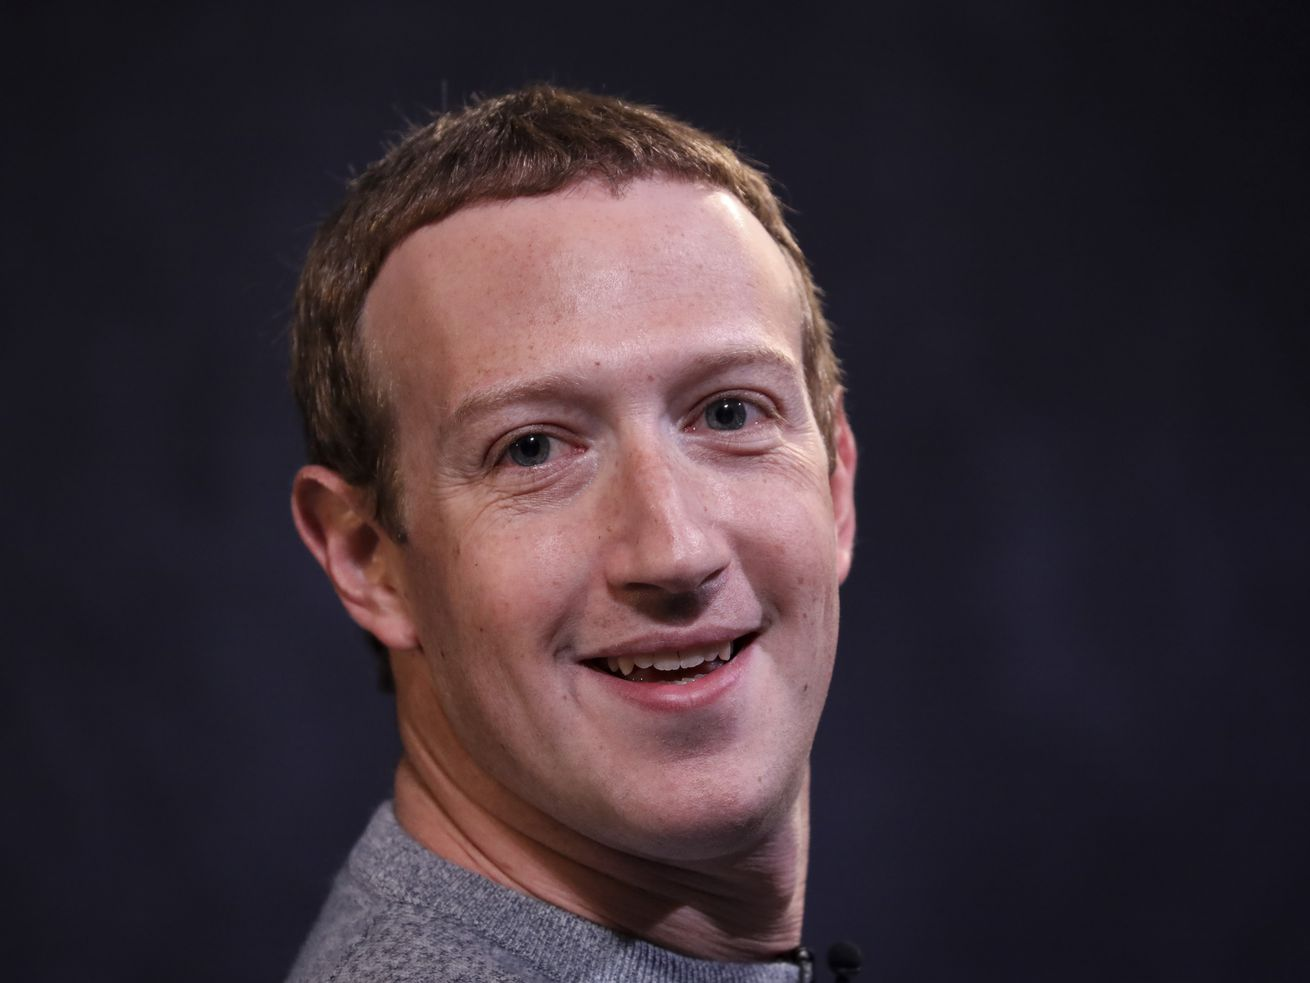 Mark Zuckerberg smiles.